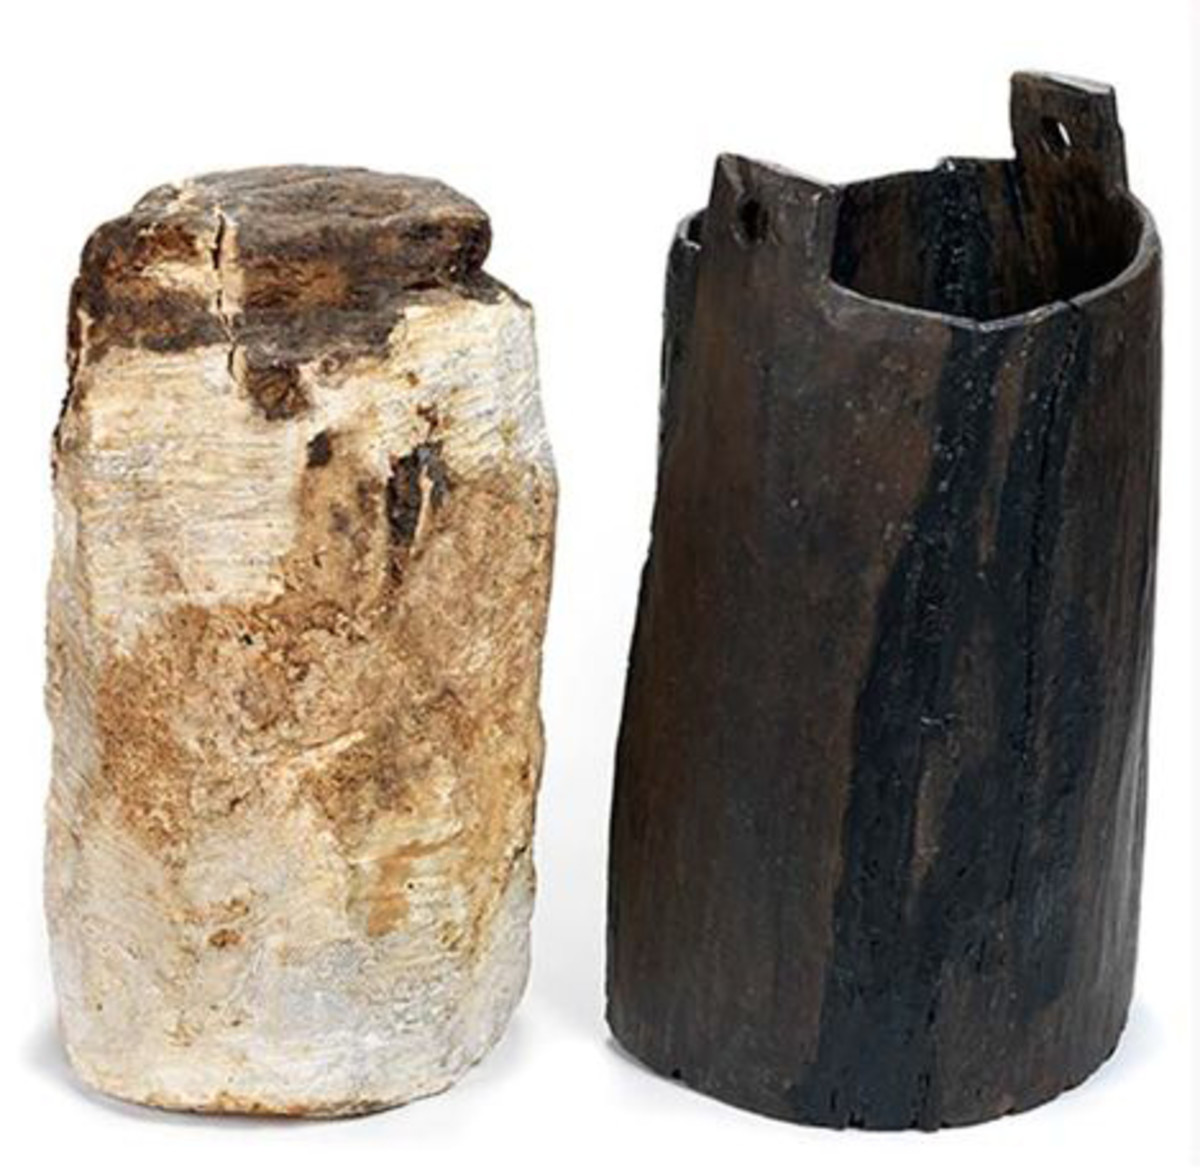 An example of bog butter recovered from Irish contexts. Pictured here is dated to 360-200 BC and found deposited in a keg.